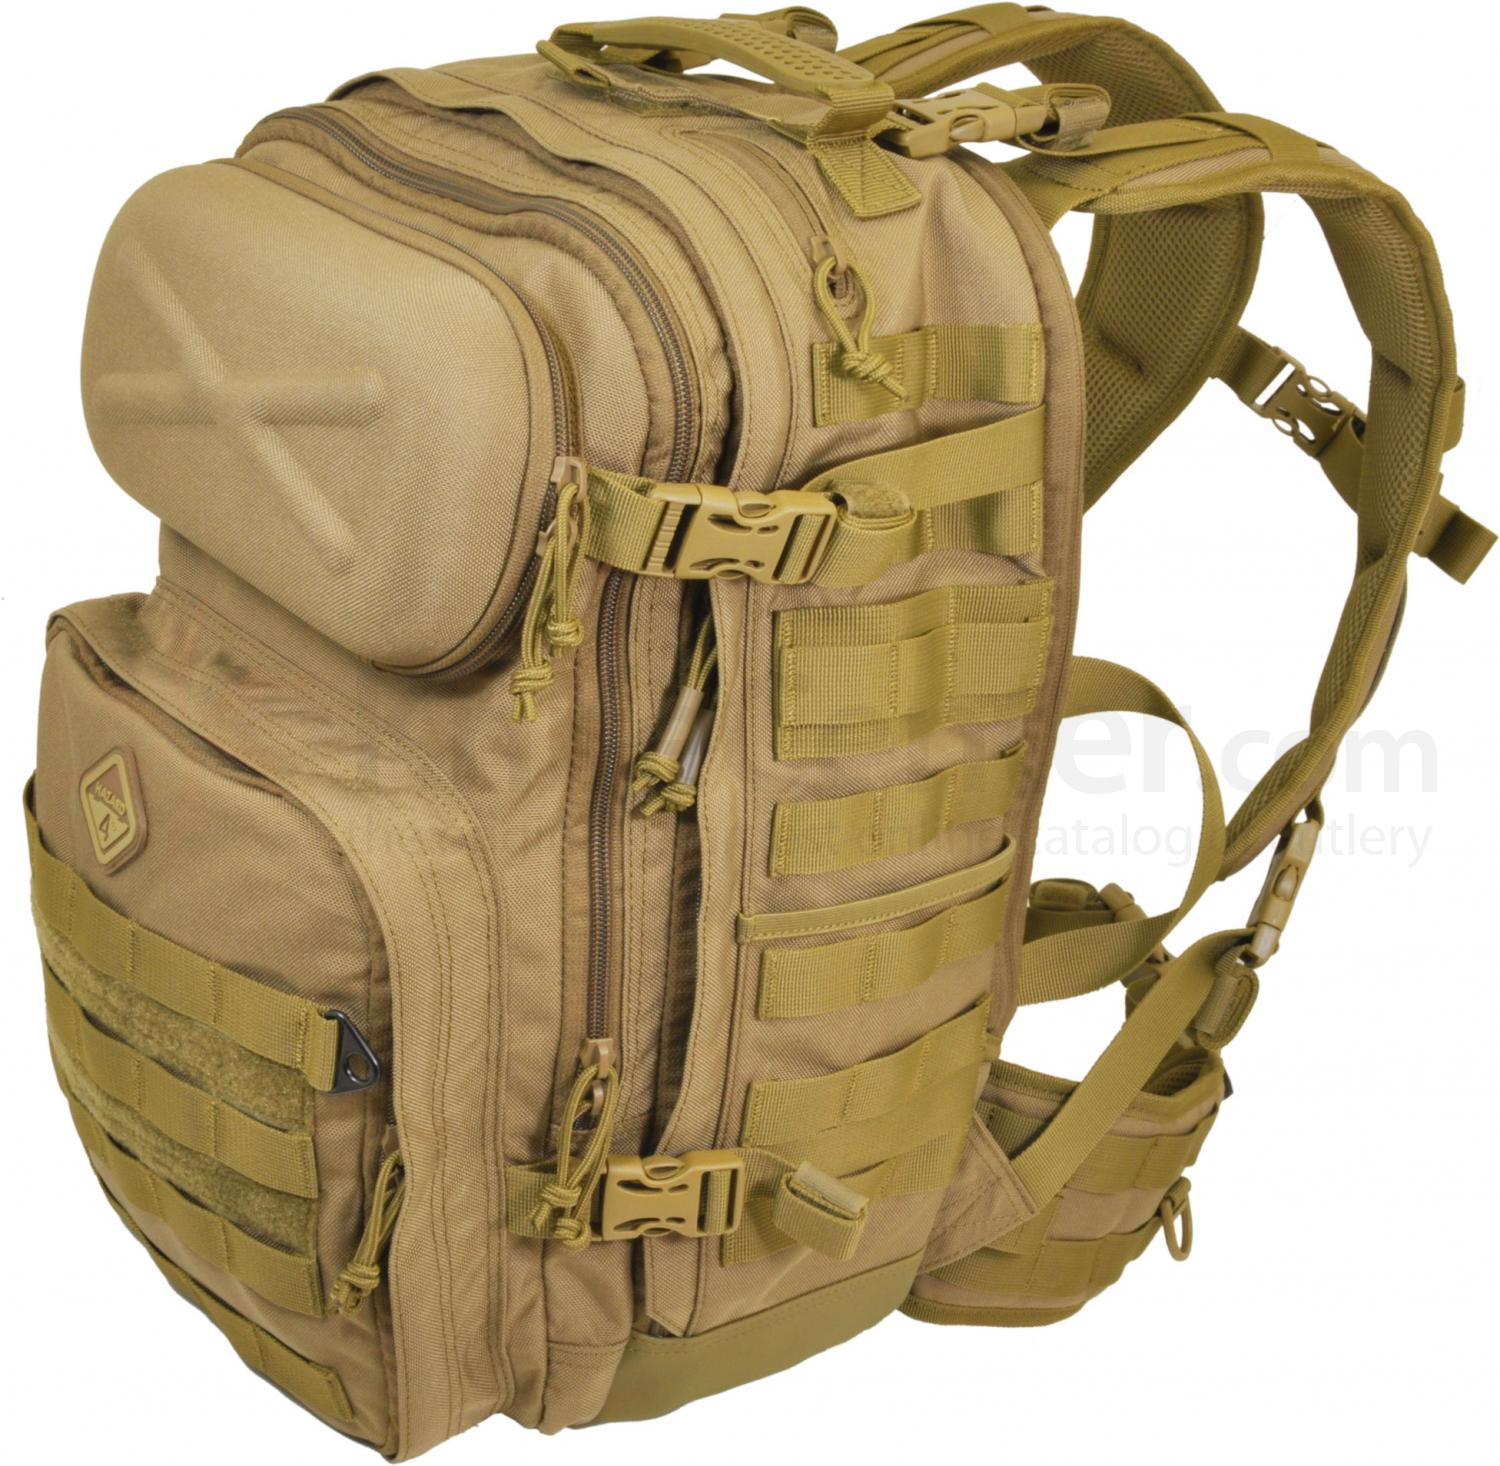 Hazard 4 Patrol Pack Thermo Pack Daypack, Coyote